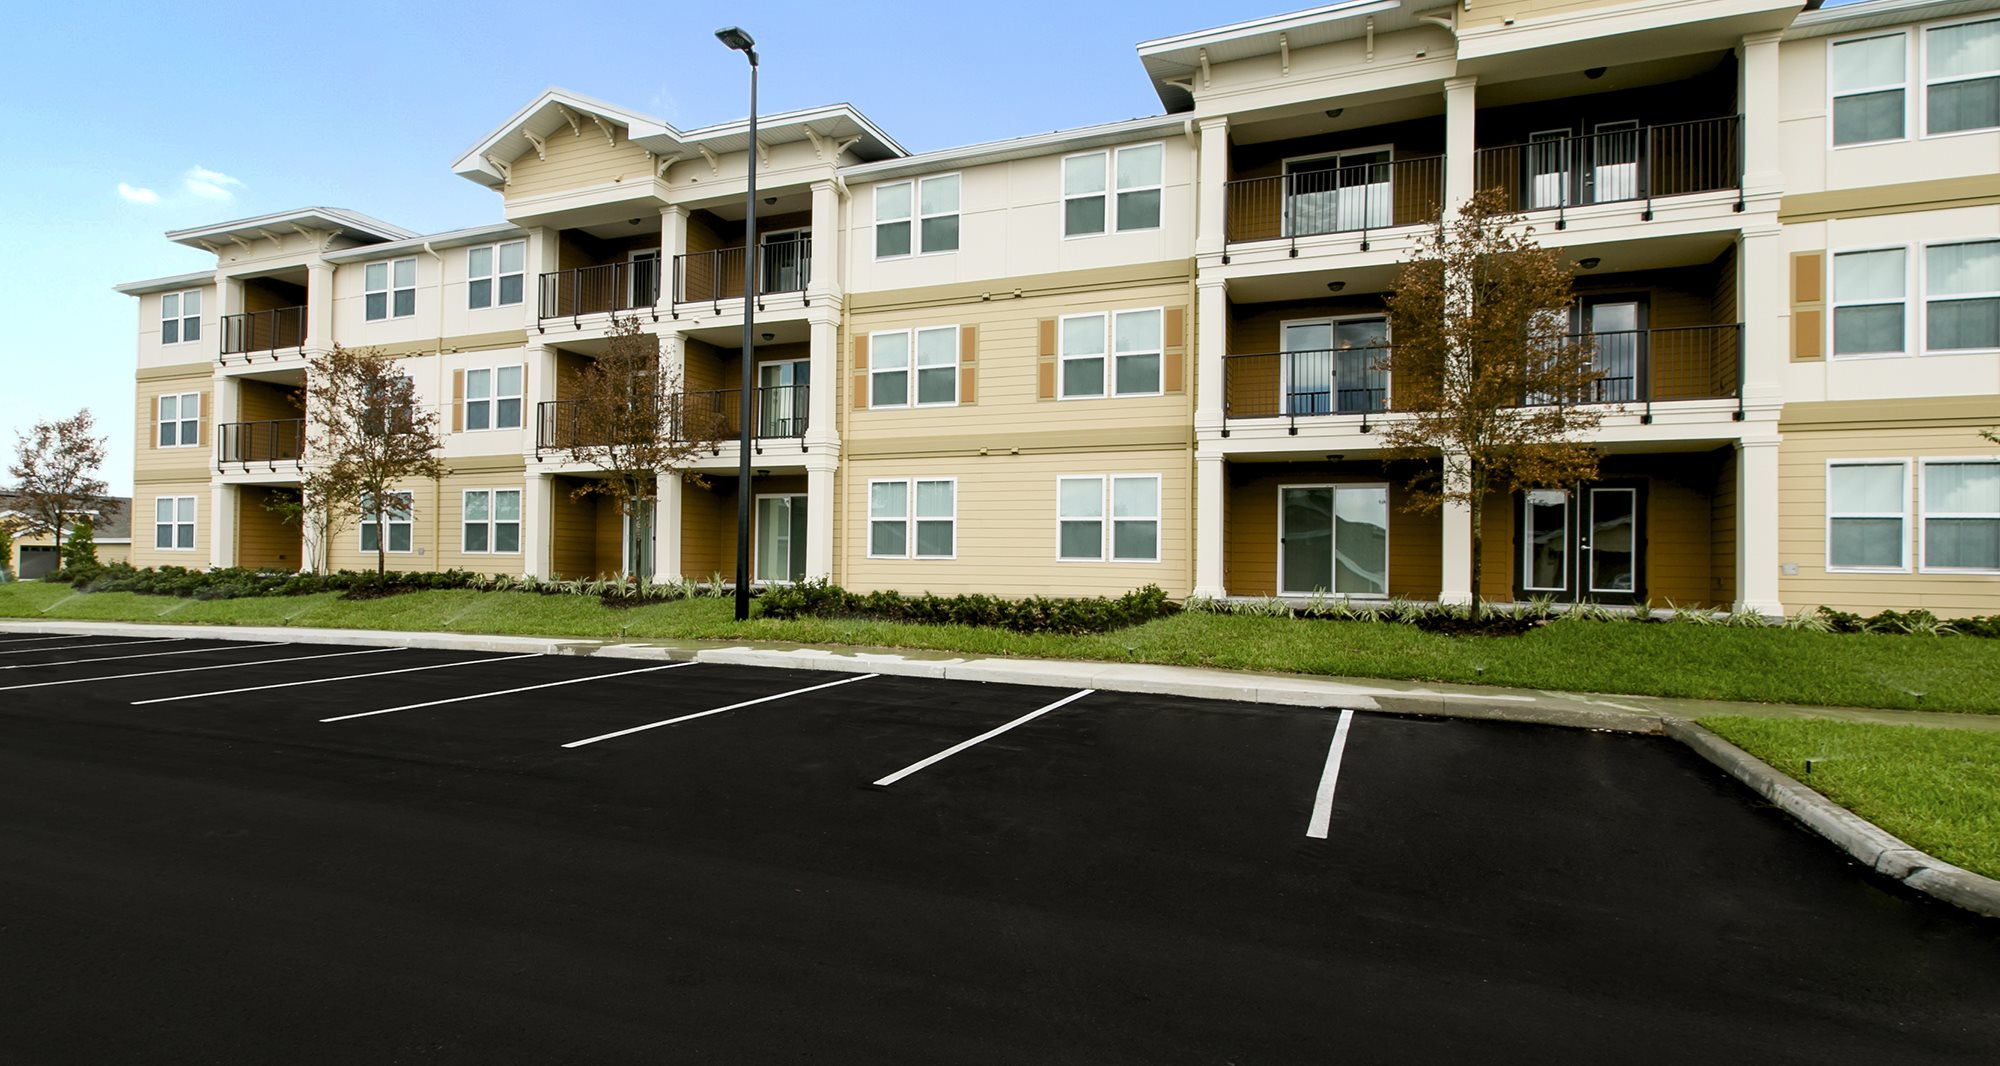 Vista Park Senior Living Apartments for rent in Brooksville, FL. Make this community your new home or visit other Concord Rents communities at ConcordRents.com. Building exterior